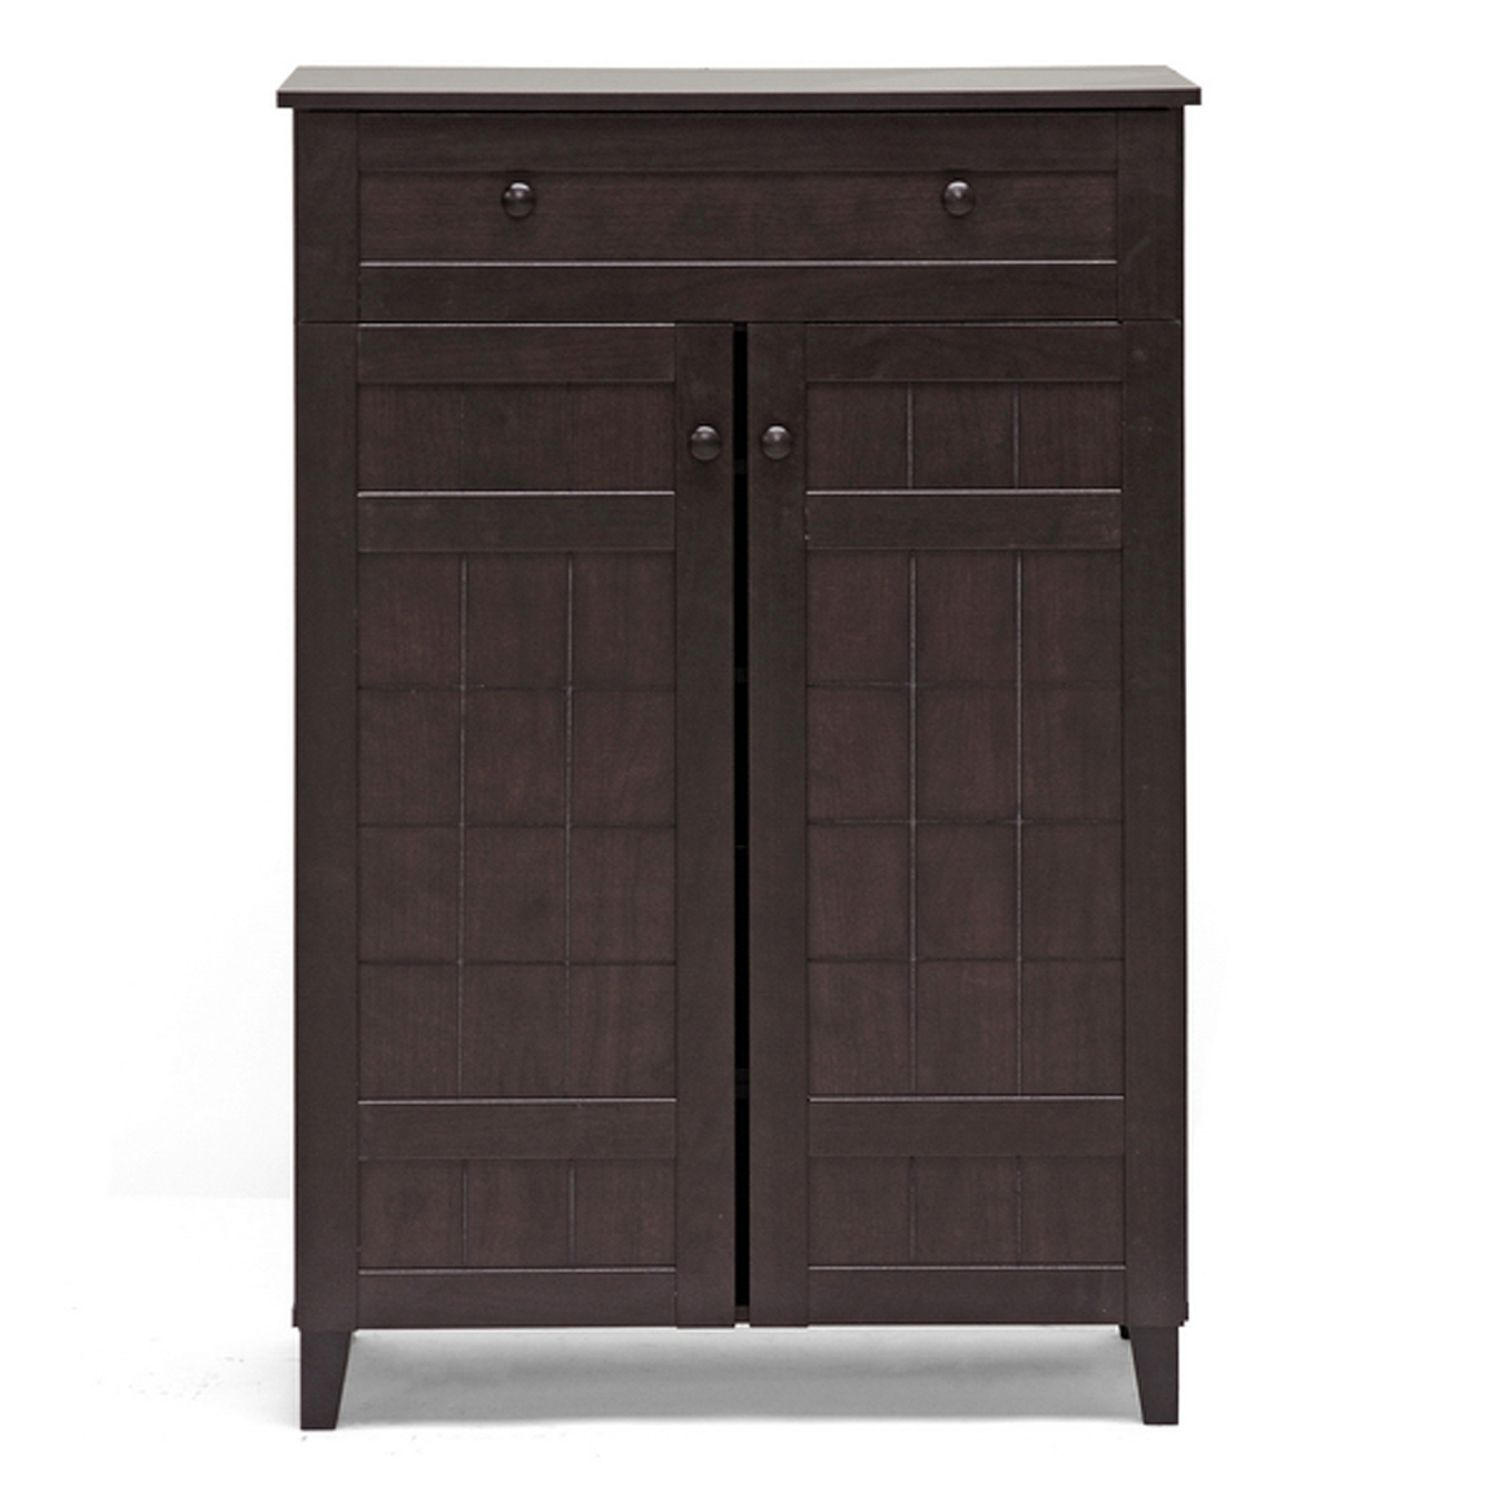 Baxton Studio Adelina 2 Door Shoe Cabinet. Sale